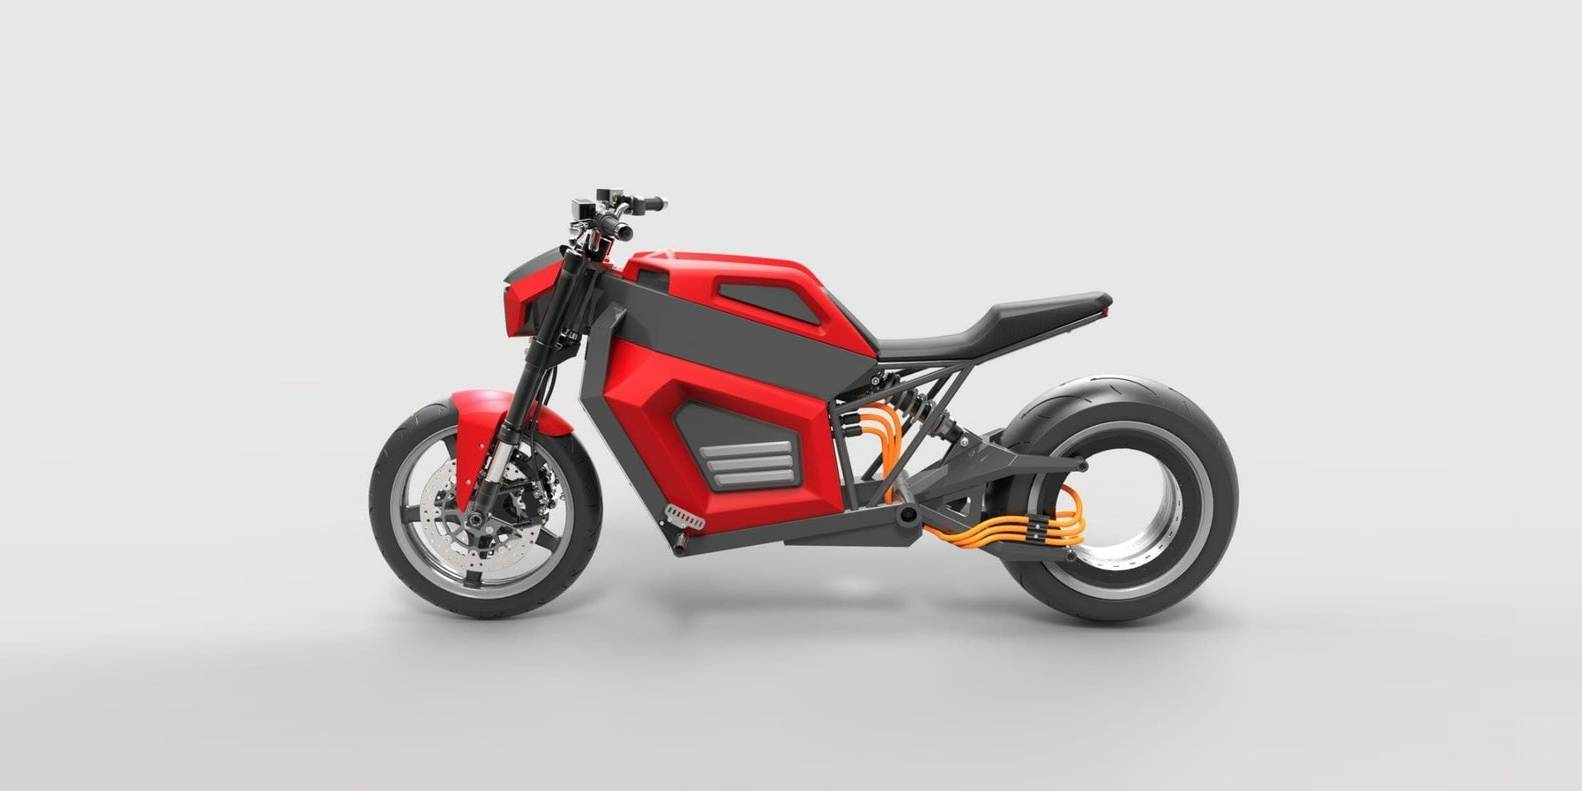 867dc7277 RMK shows off 50 kW electric motorcycle with the coolest motor you ve ever  seen2019 is turning into a bumper year for electric motorcycles.